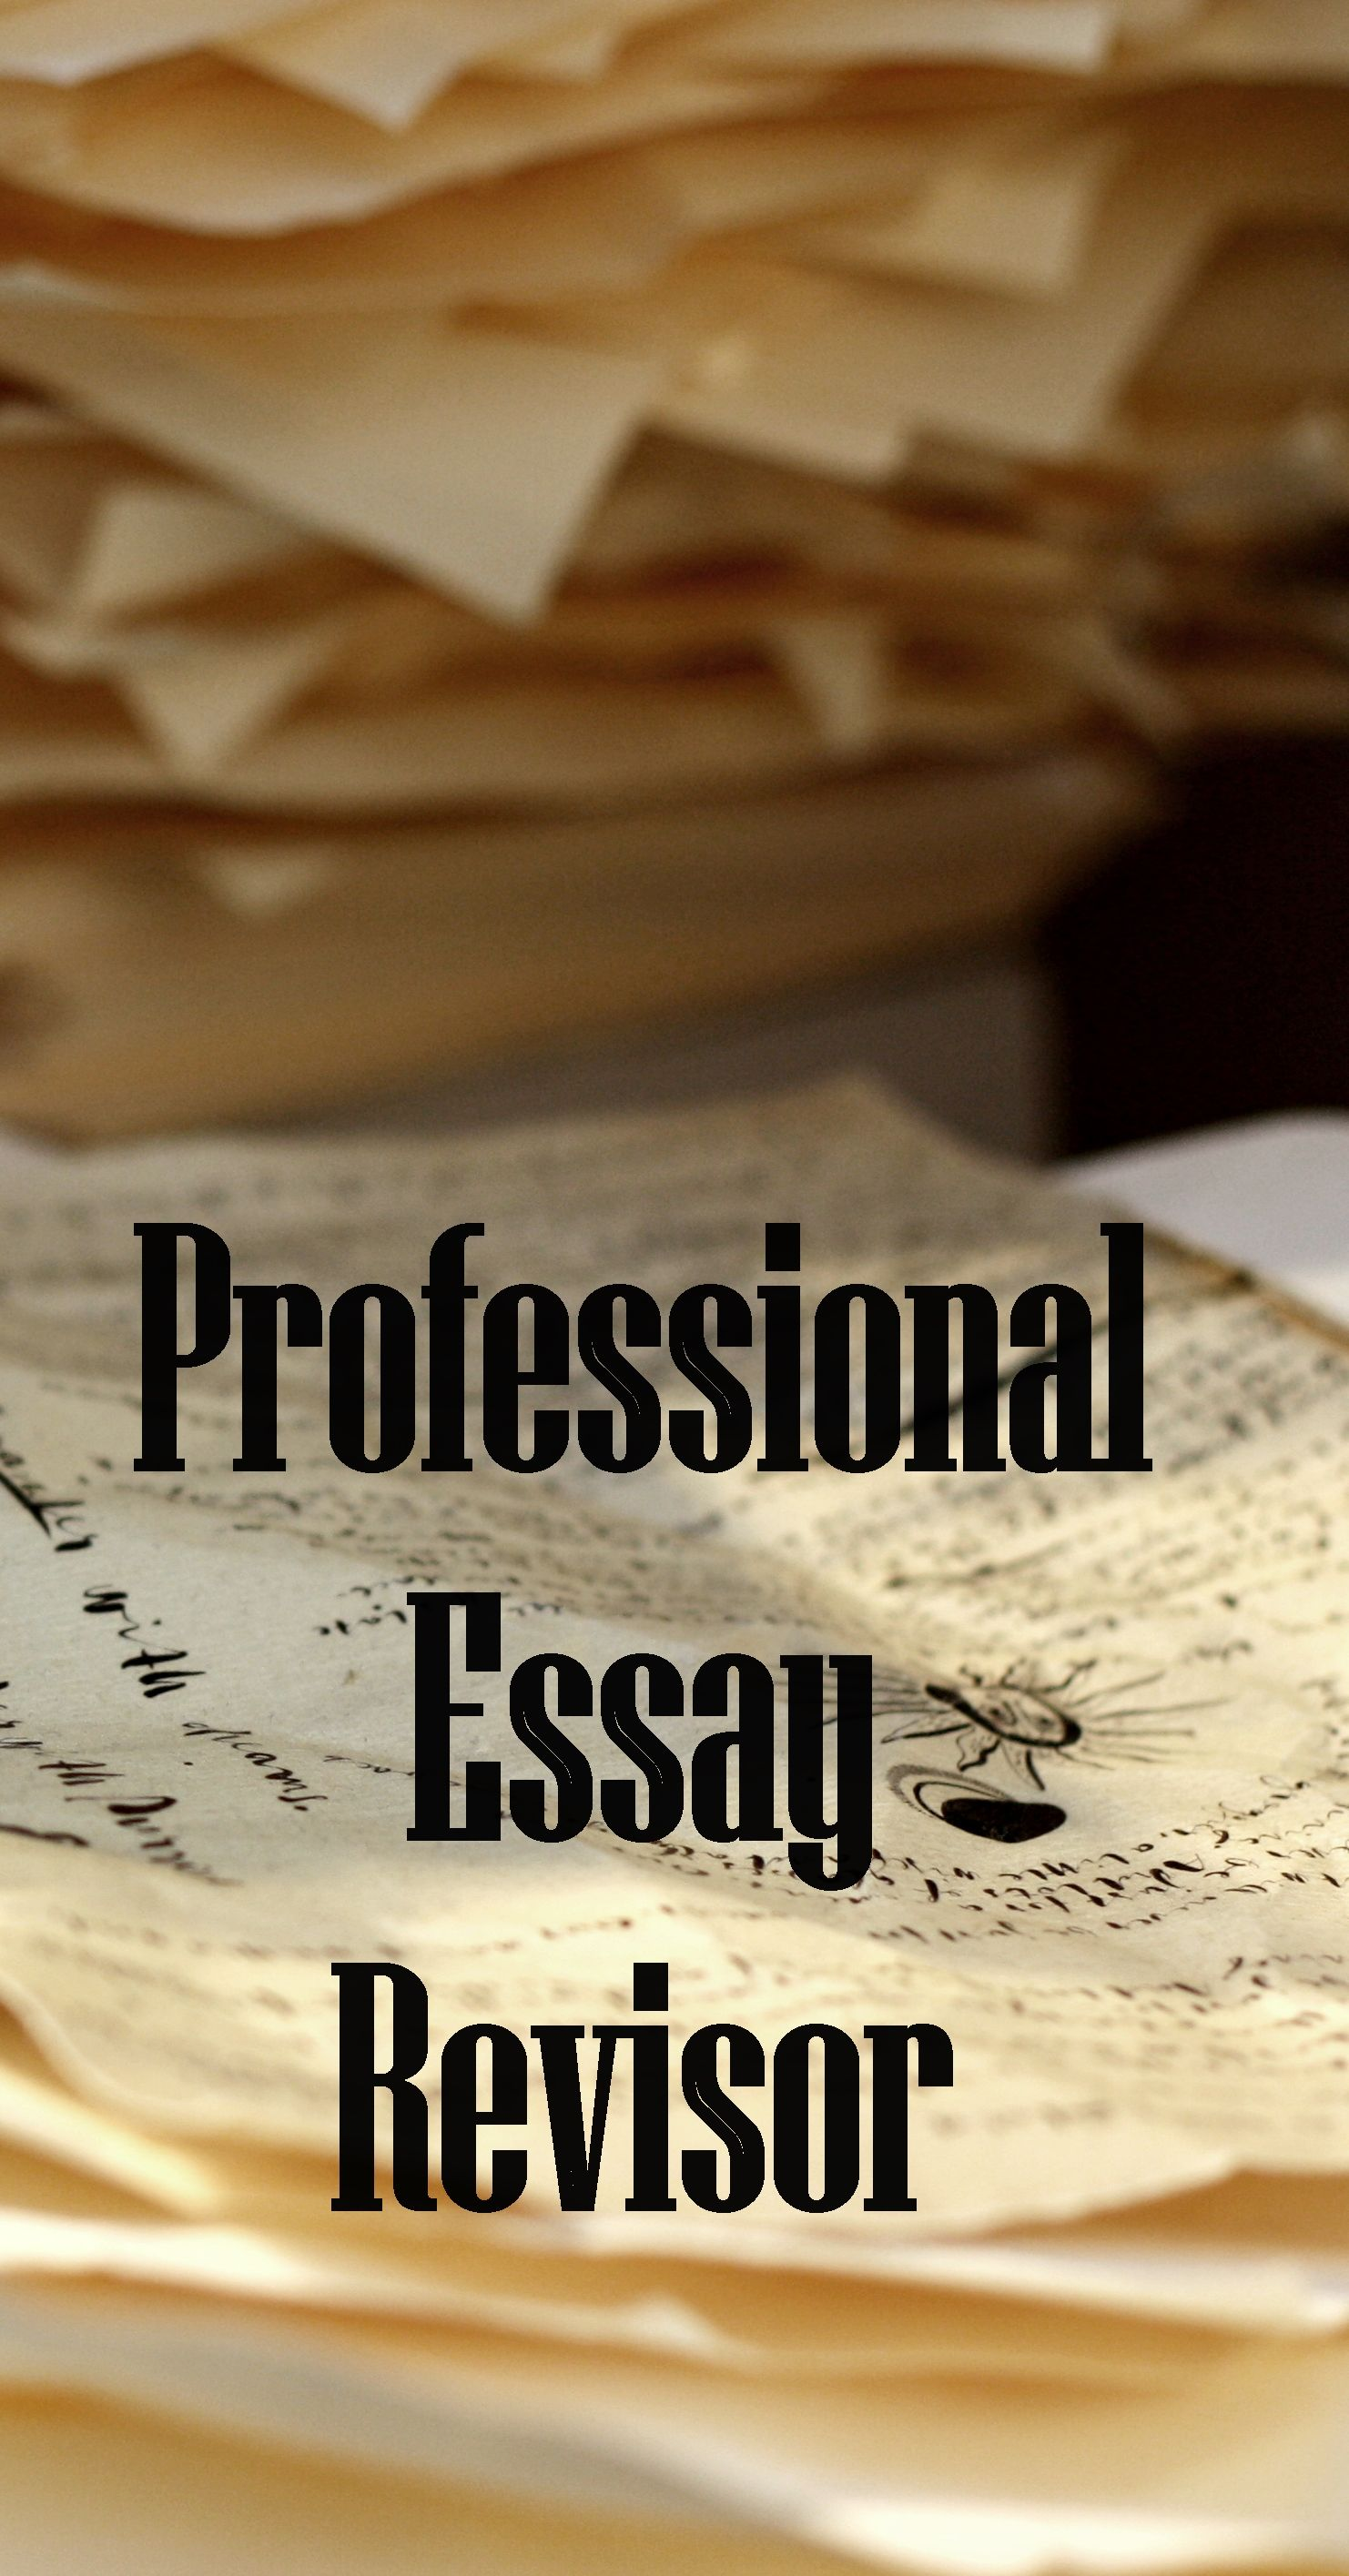 We offer an option of essay revisor online that will guide you in